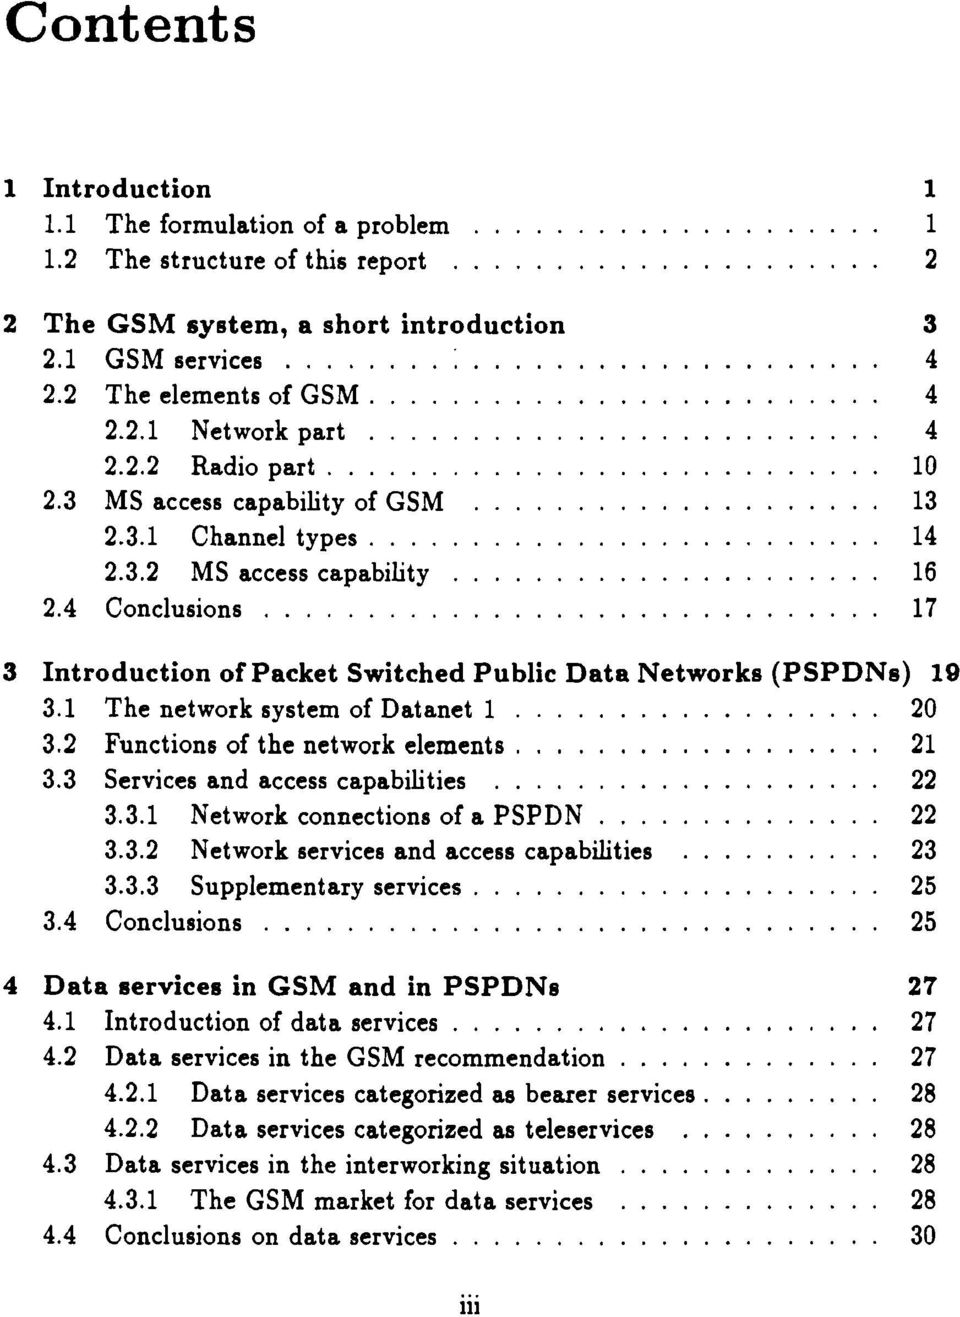 1 The network system of Datanet 1. 20 3.2 Functions of the network elements.... 21 3.3 Services and access capabilities... 22 3.3.1 Network connections of a PSPDN 22 3.3.2 Network services and access capabilities 23 3.